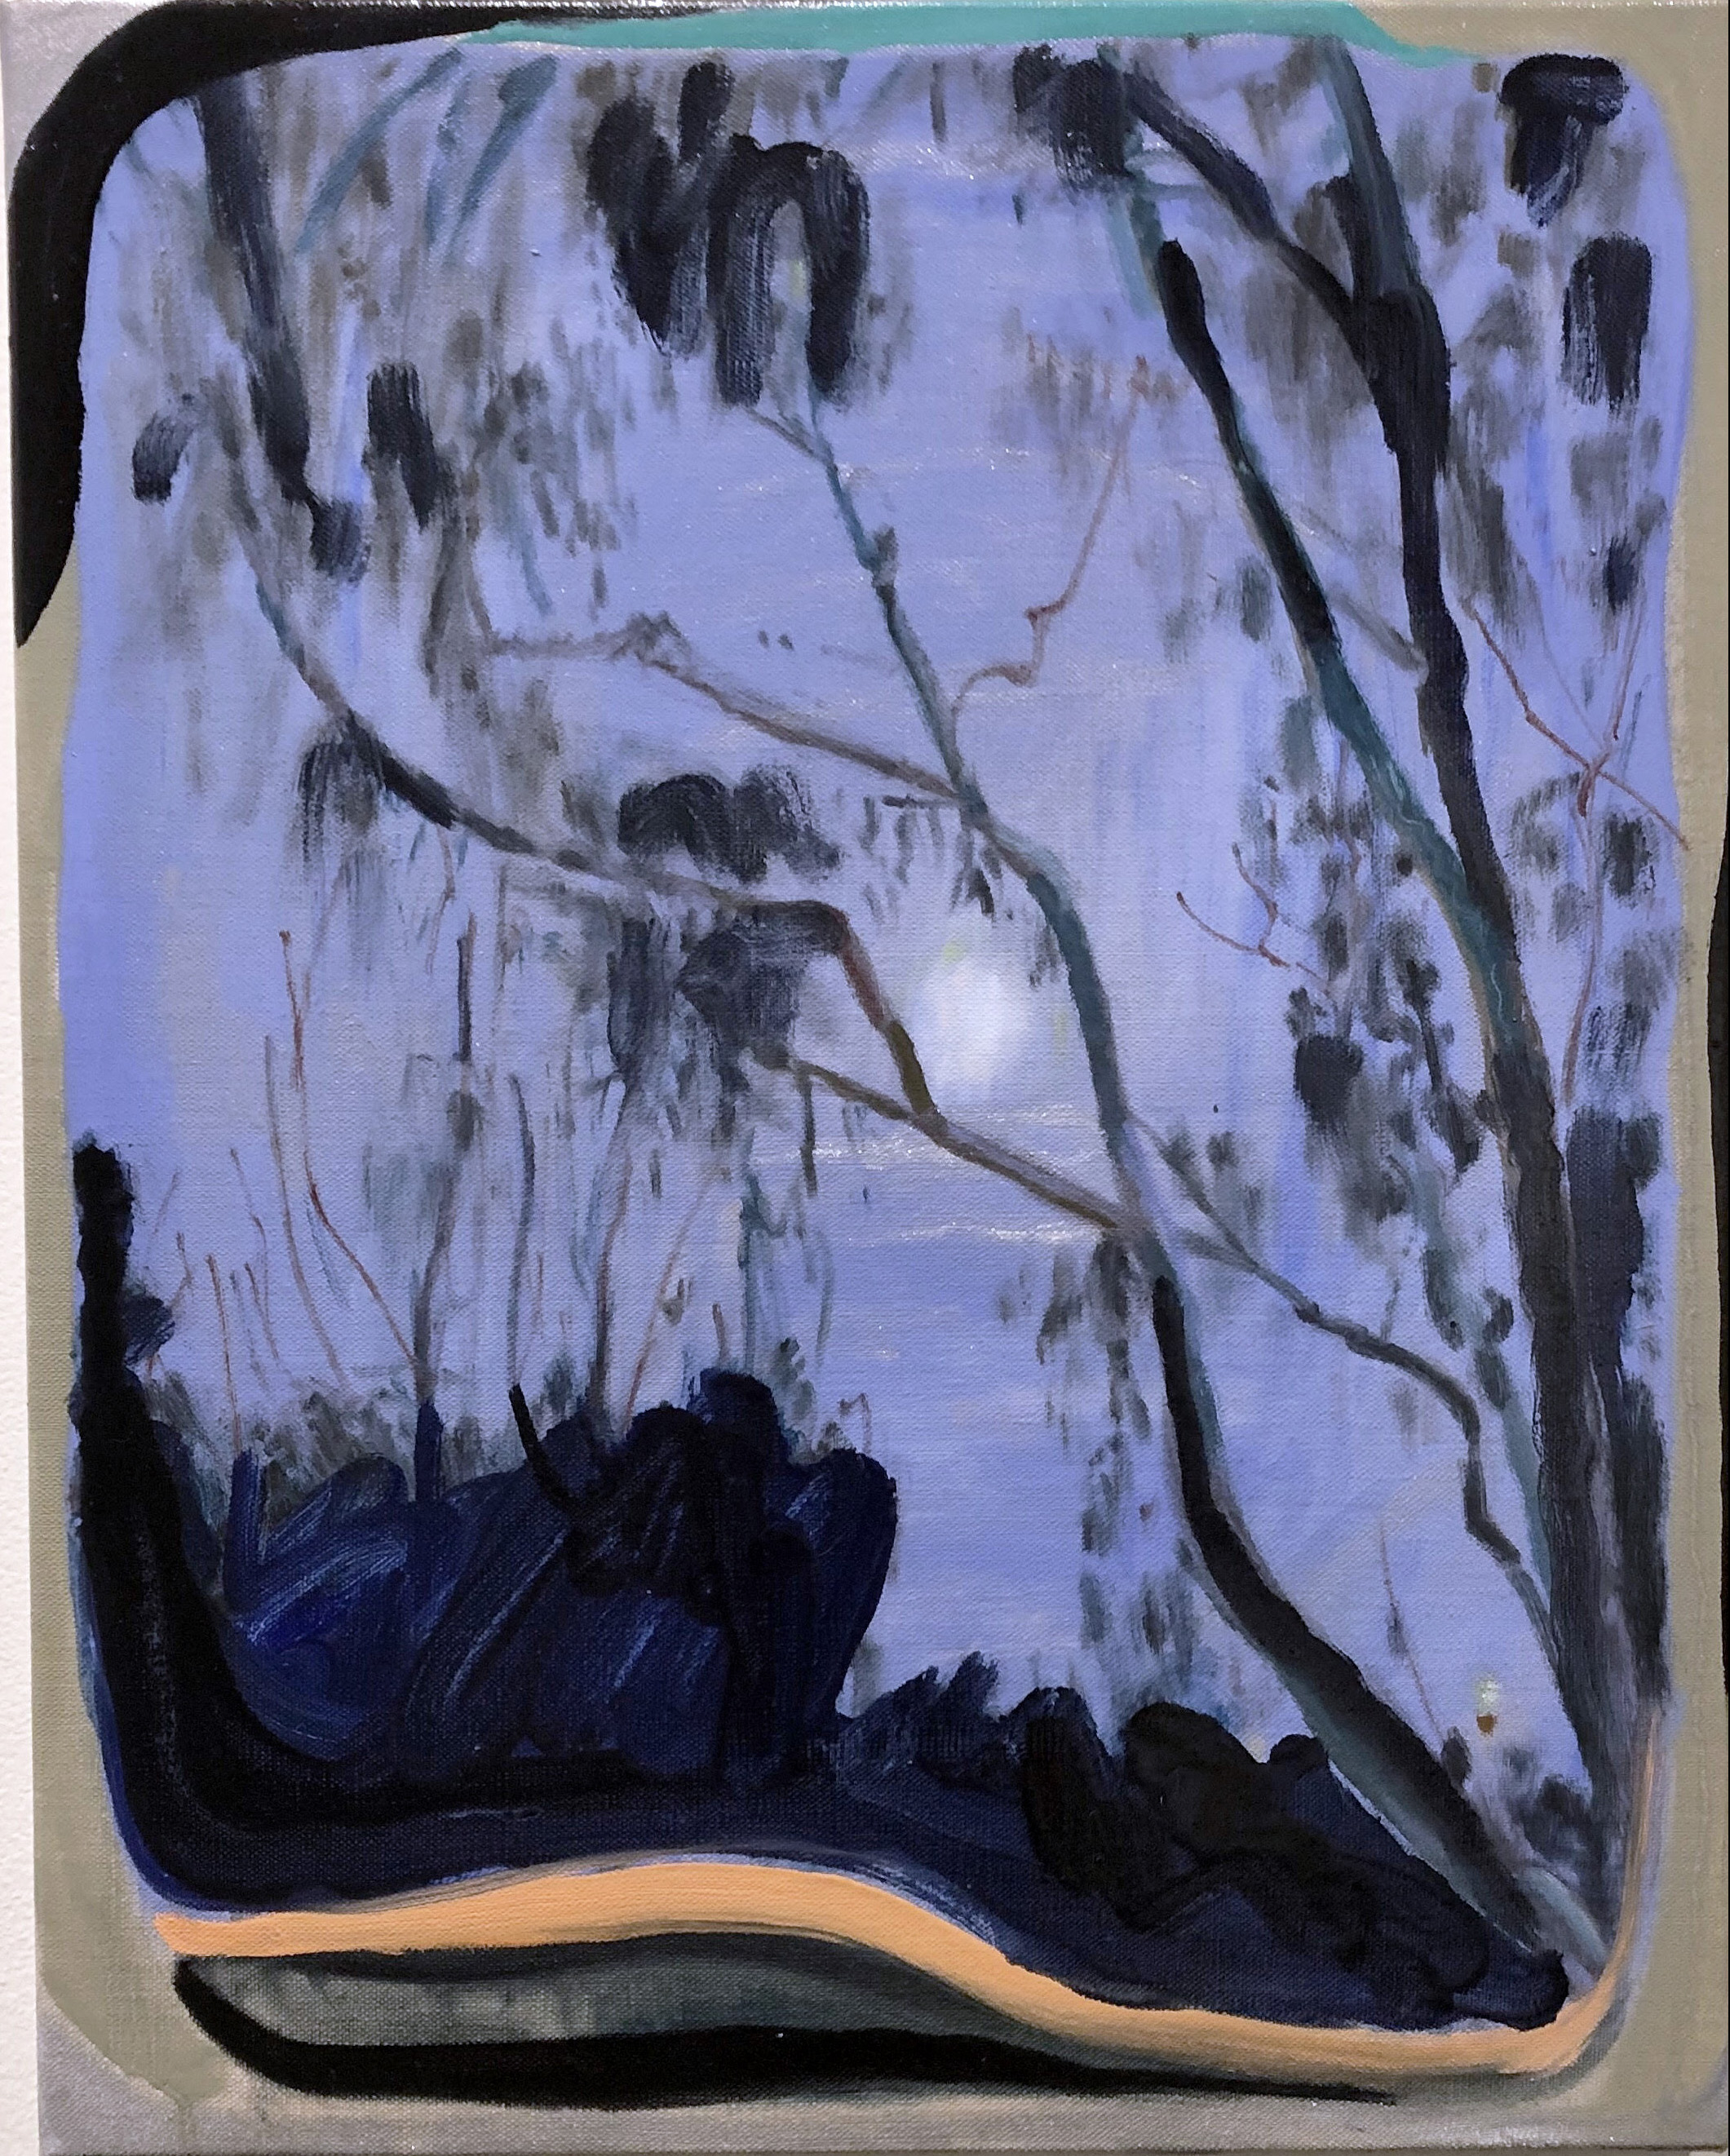 Elyss McCleary  Night trees frame the moon at Merri Creek skate park, dusk, a beautiful refreshing silver shower  2019 , Oil on linen, 51cm x 41cm  This is an ongoing series of works that are painting love portraits  to the night trees. I take photos of the trees in the evening, dawn or at night, the paintings are quiet portraits of some of these.The sky and camera flash stage a surreal flat image of it in space.  I often think about the trees there holding space, people and things around, sounds, ciggies, maybe rubbish or piss on it, a road through, a bright light. The neon glow of amber city or suburban occupational and health light for made for us is blaring on the tree, i wish i could give it some sunglasses for this at night at least. so very beautiful and strong, talking and making sounds with each other.